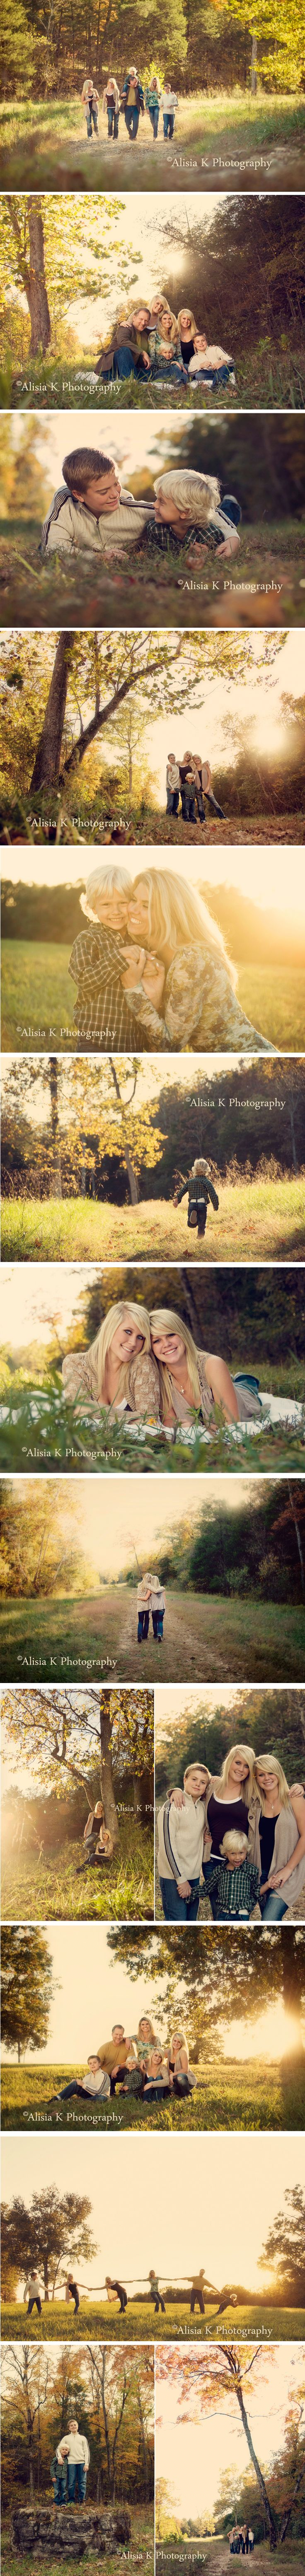 Incredible family session - great location, perfect time of the evening for the light, good mix of candids and poses, just world class stuff